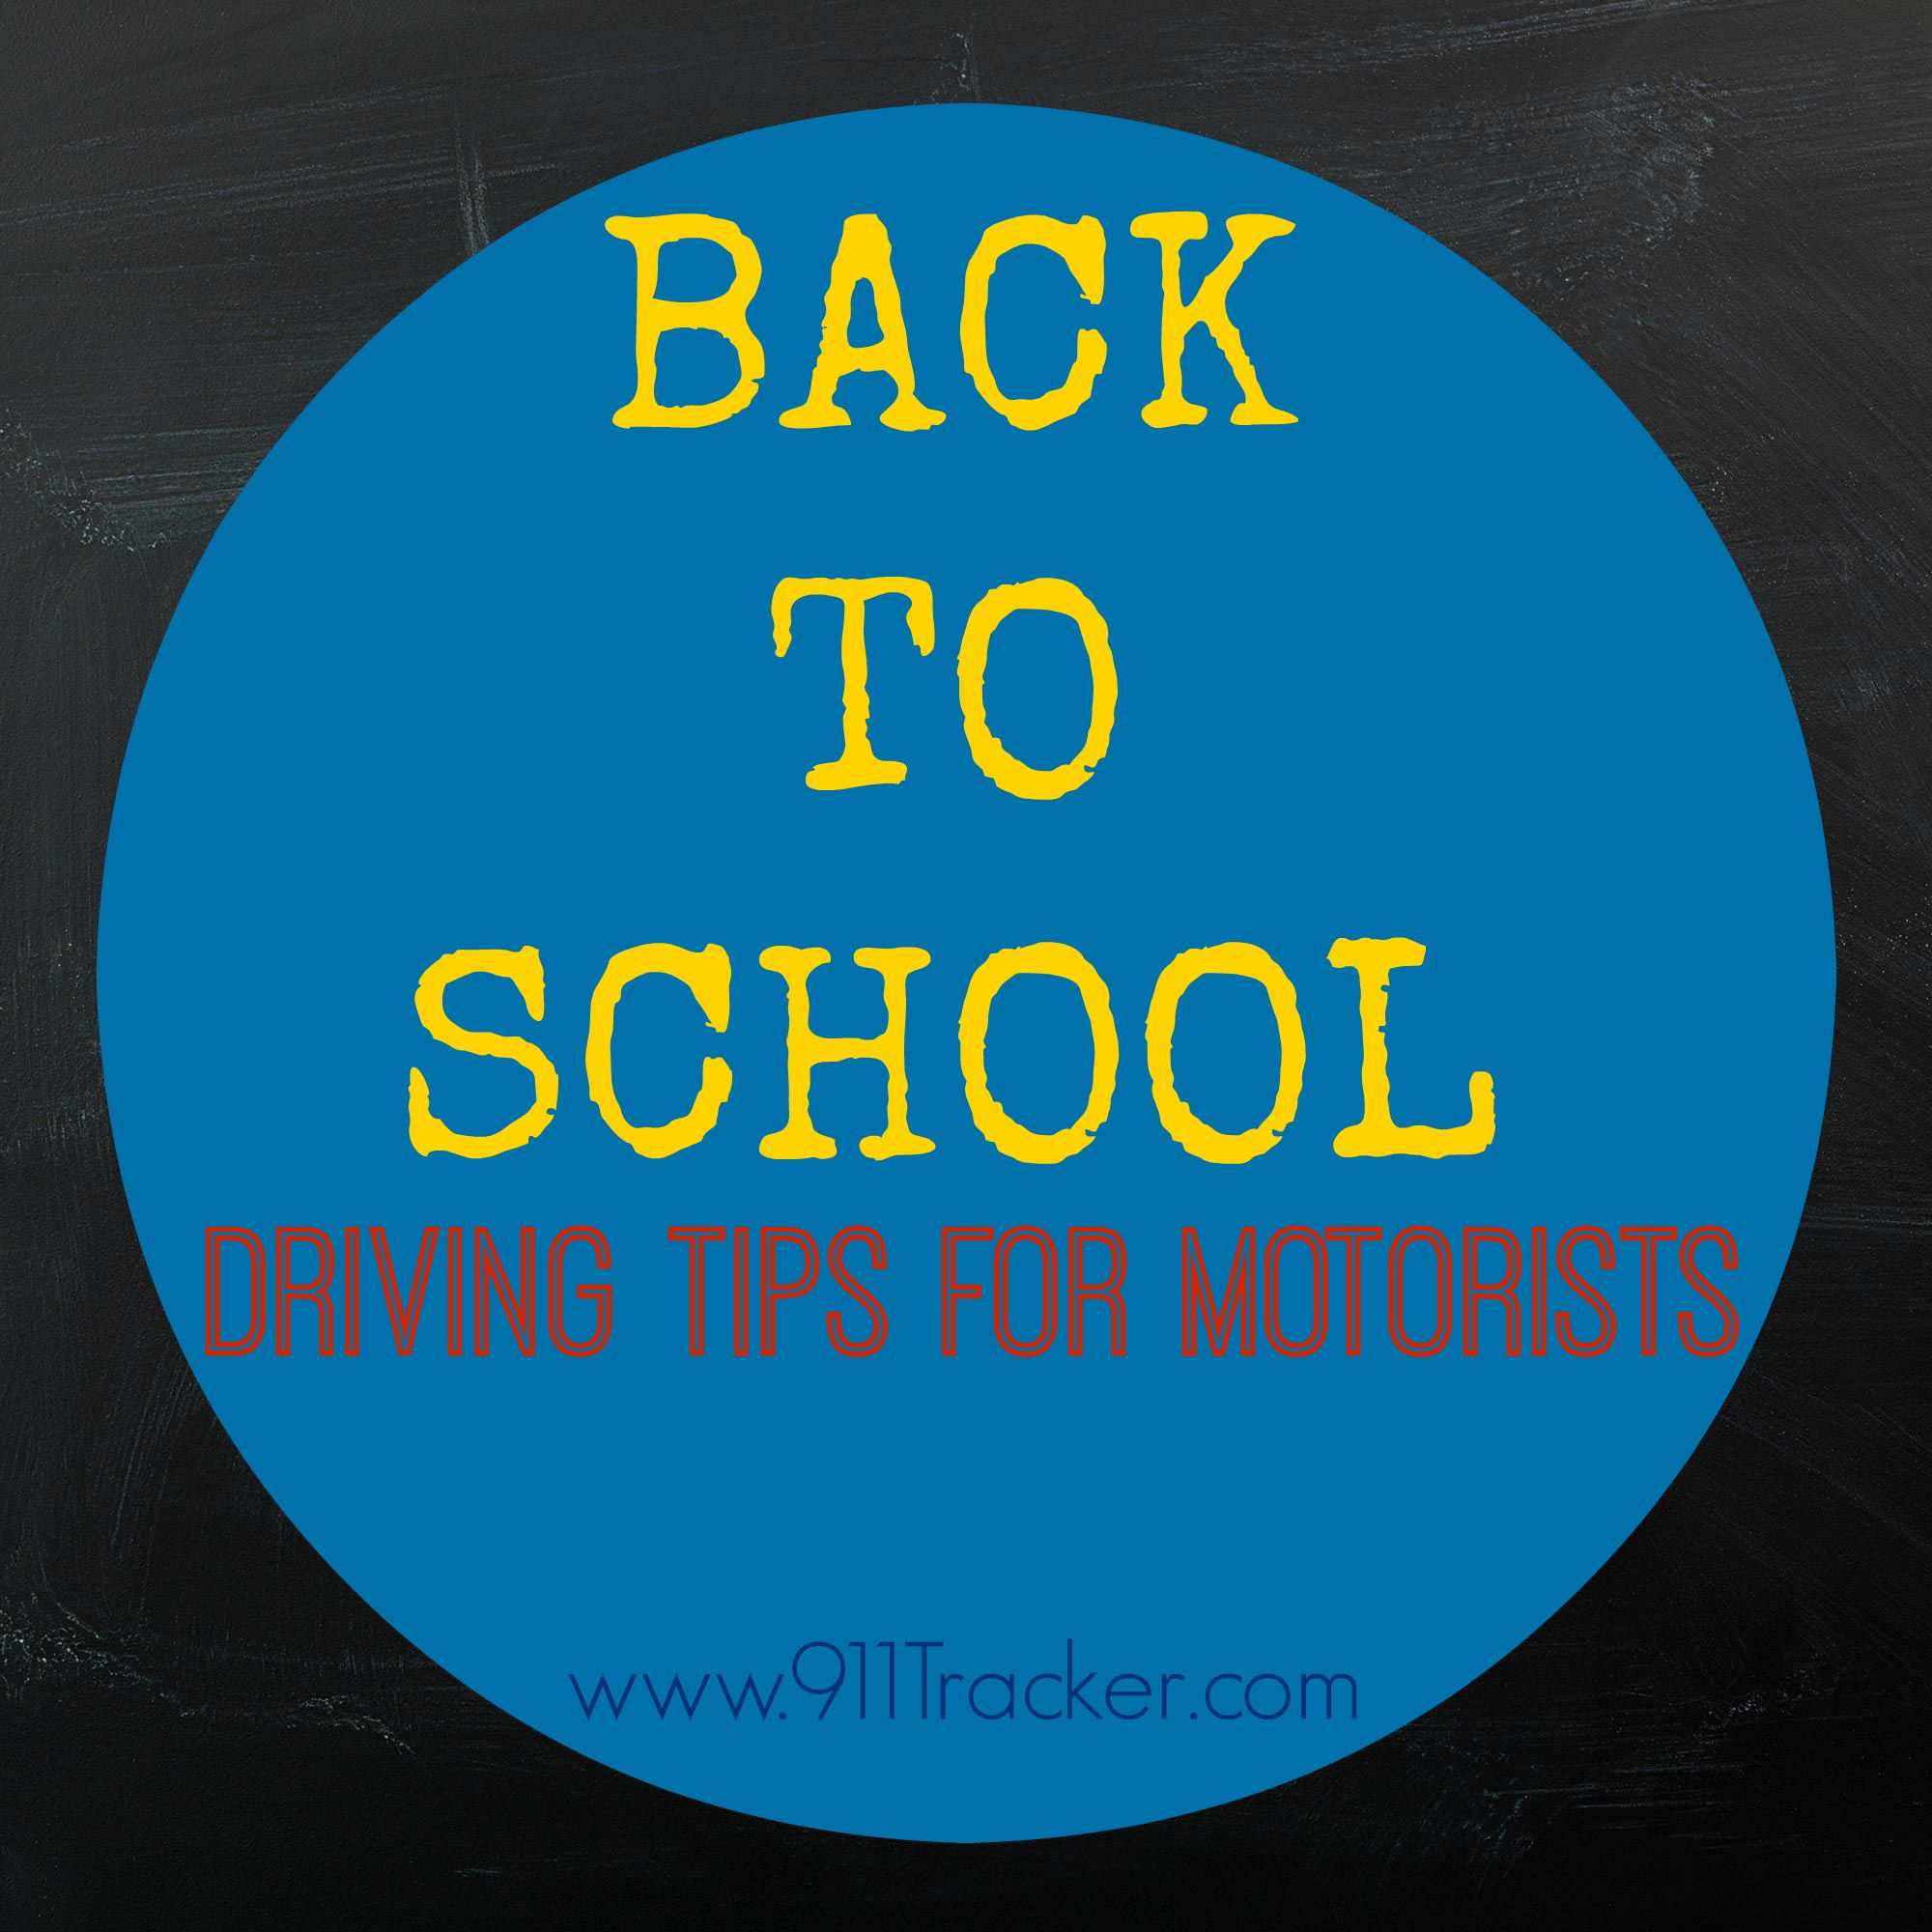 911Tracker back to school driving tips